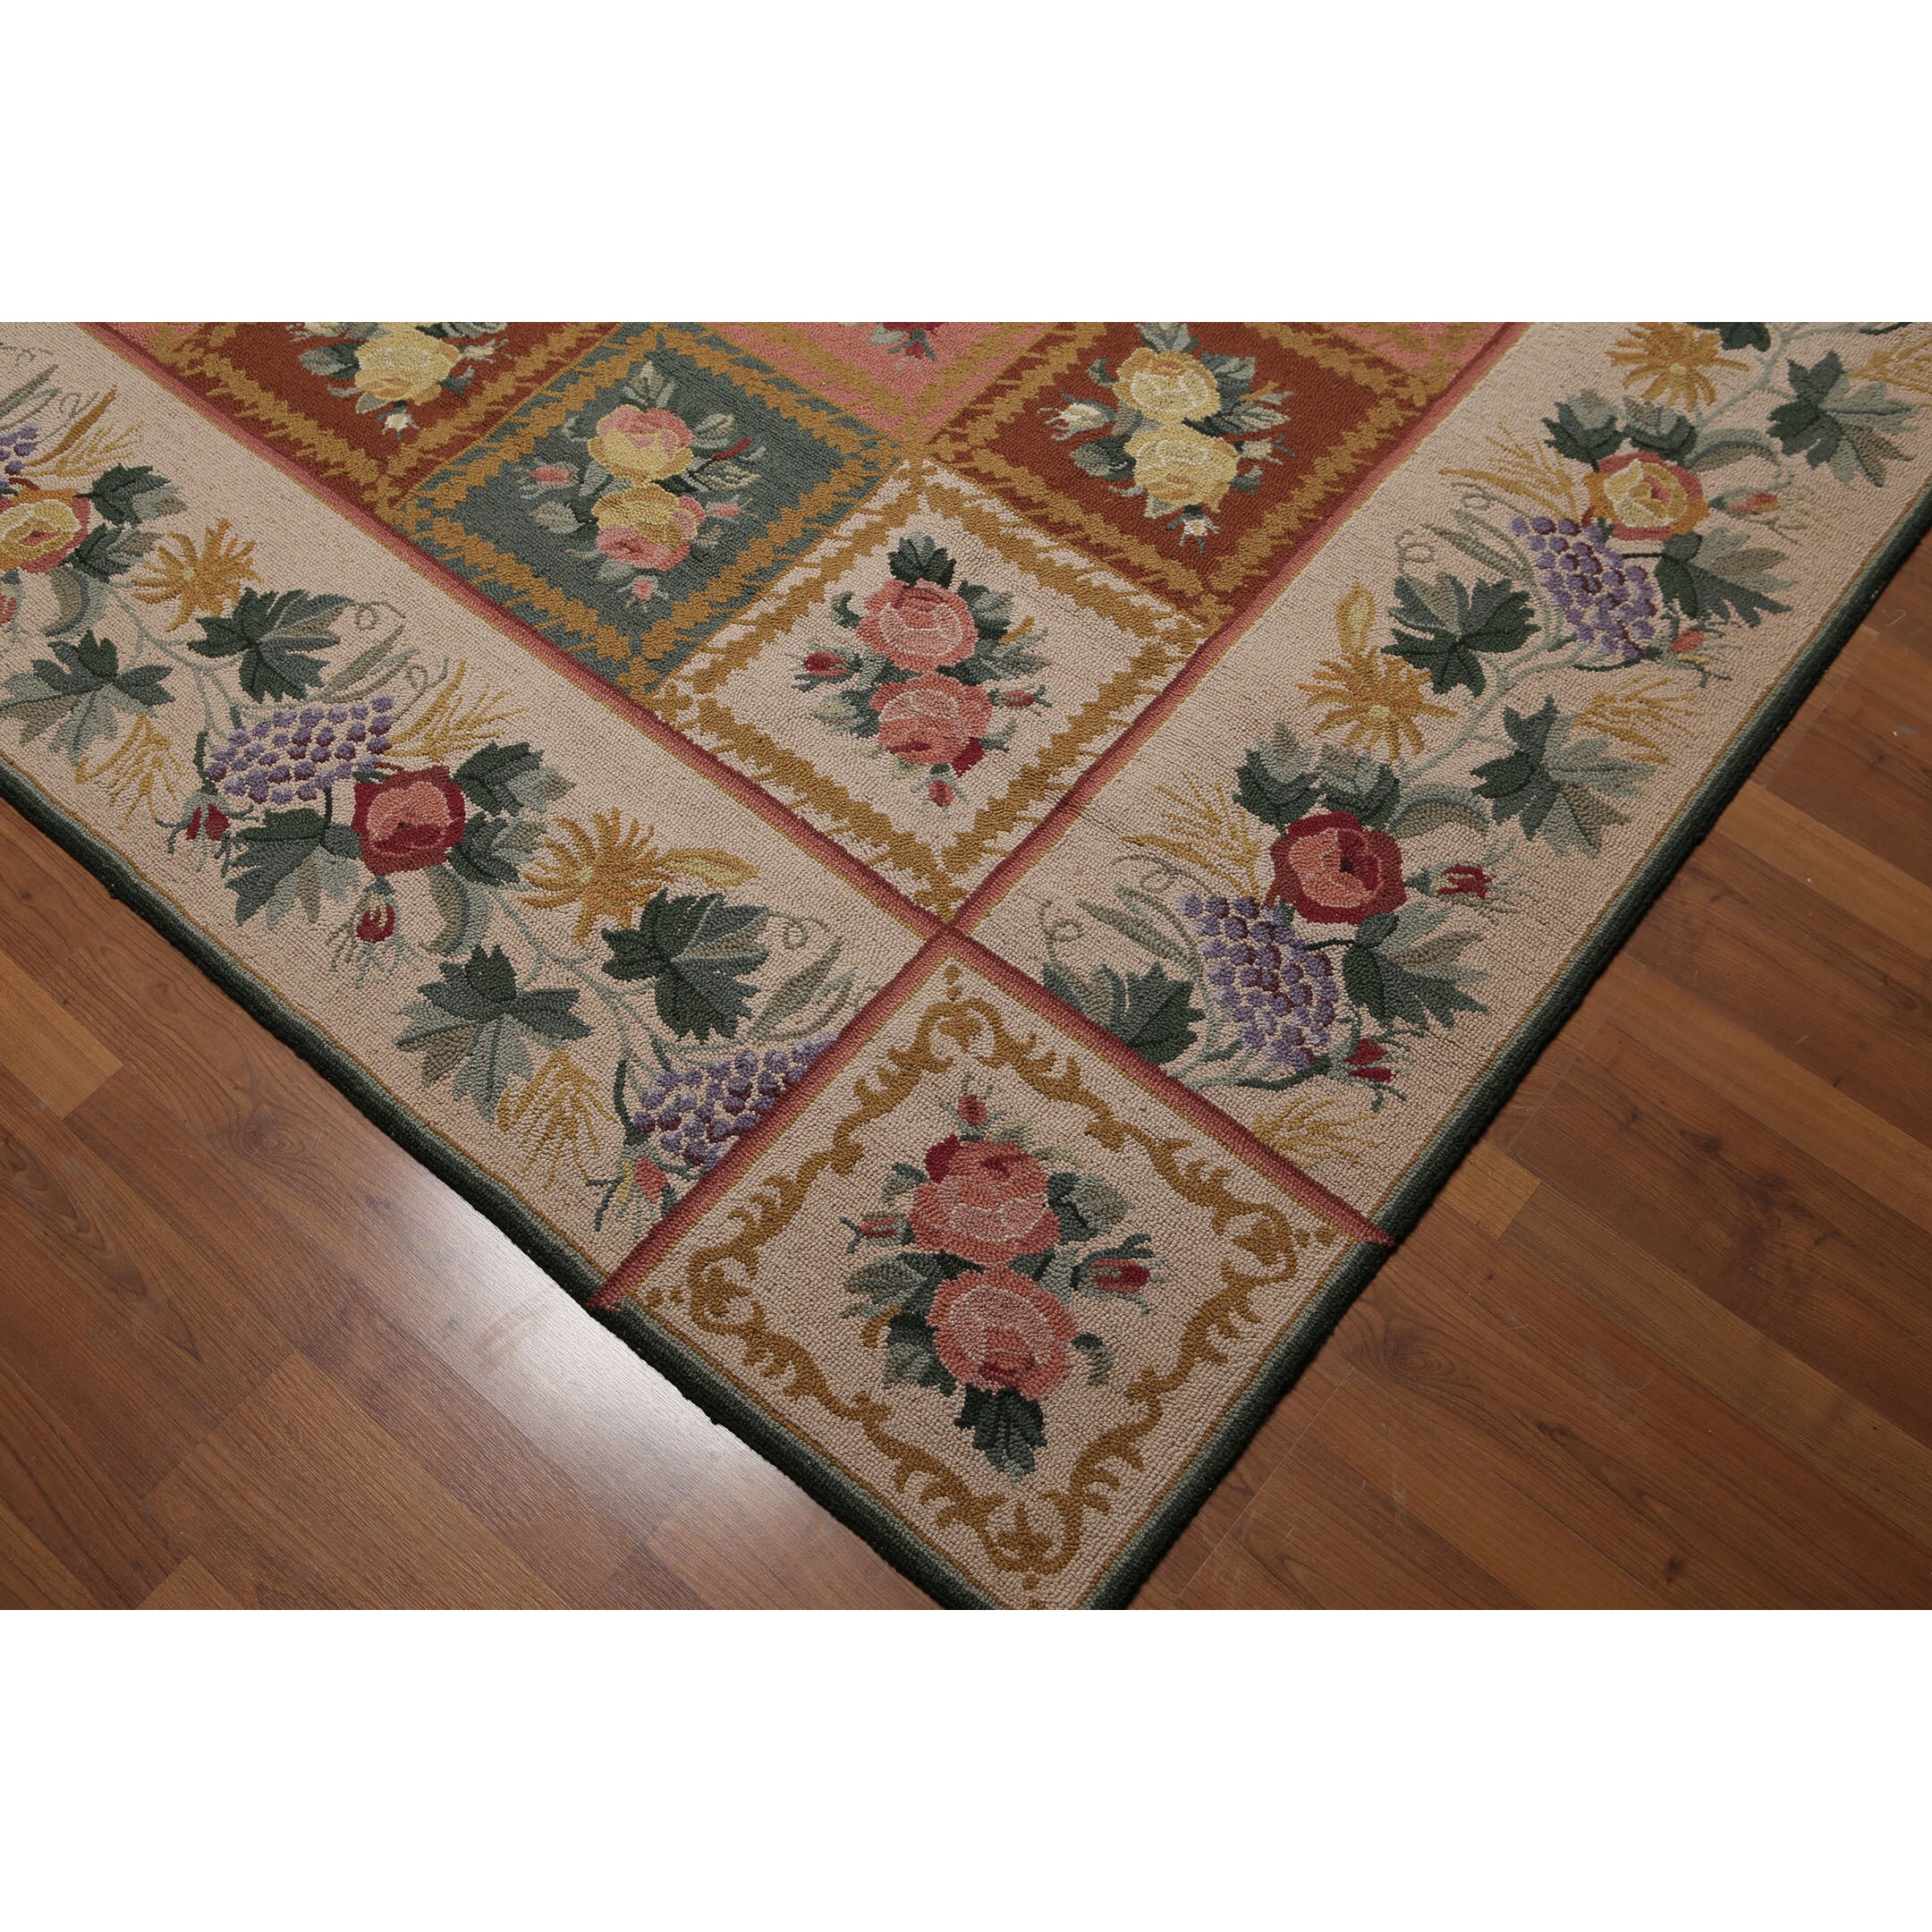 Rustic Farmhouse Area Rugs Buy 8 39 X 10 39 Area Rugs Online At Overstock Our Best